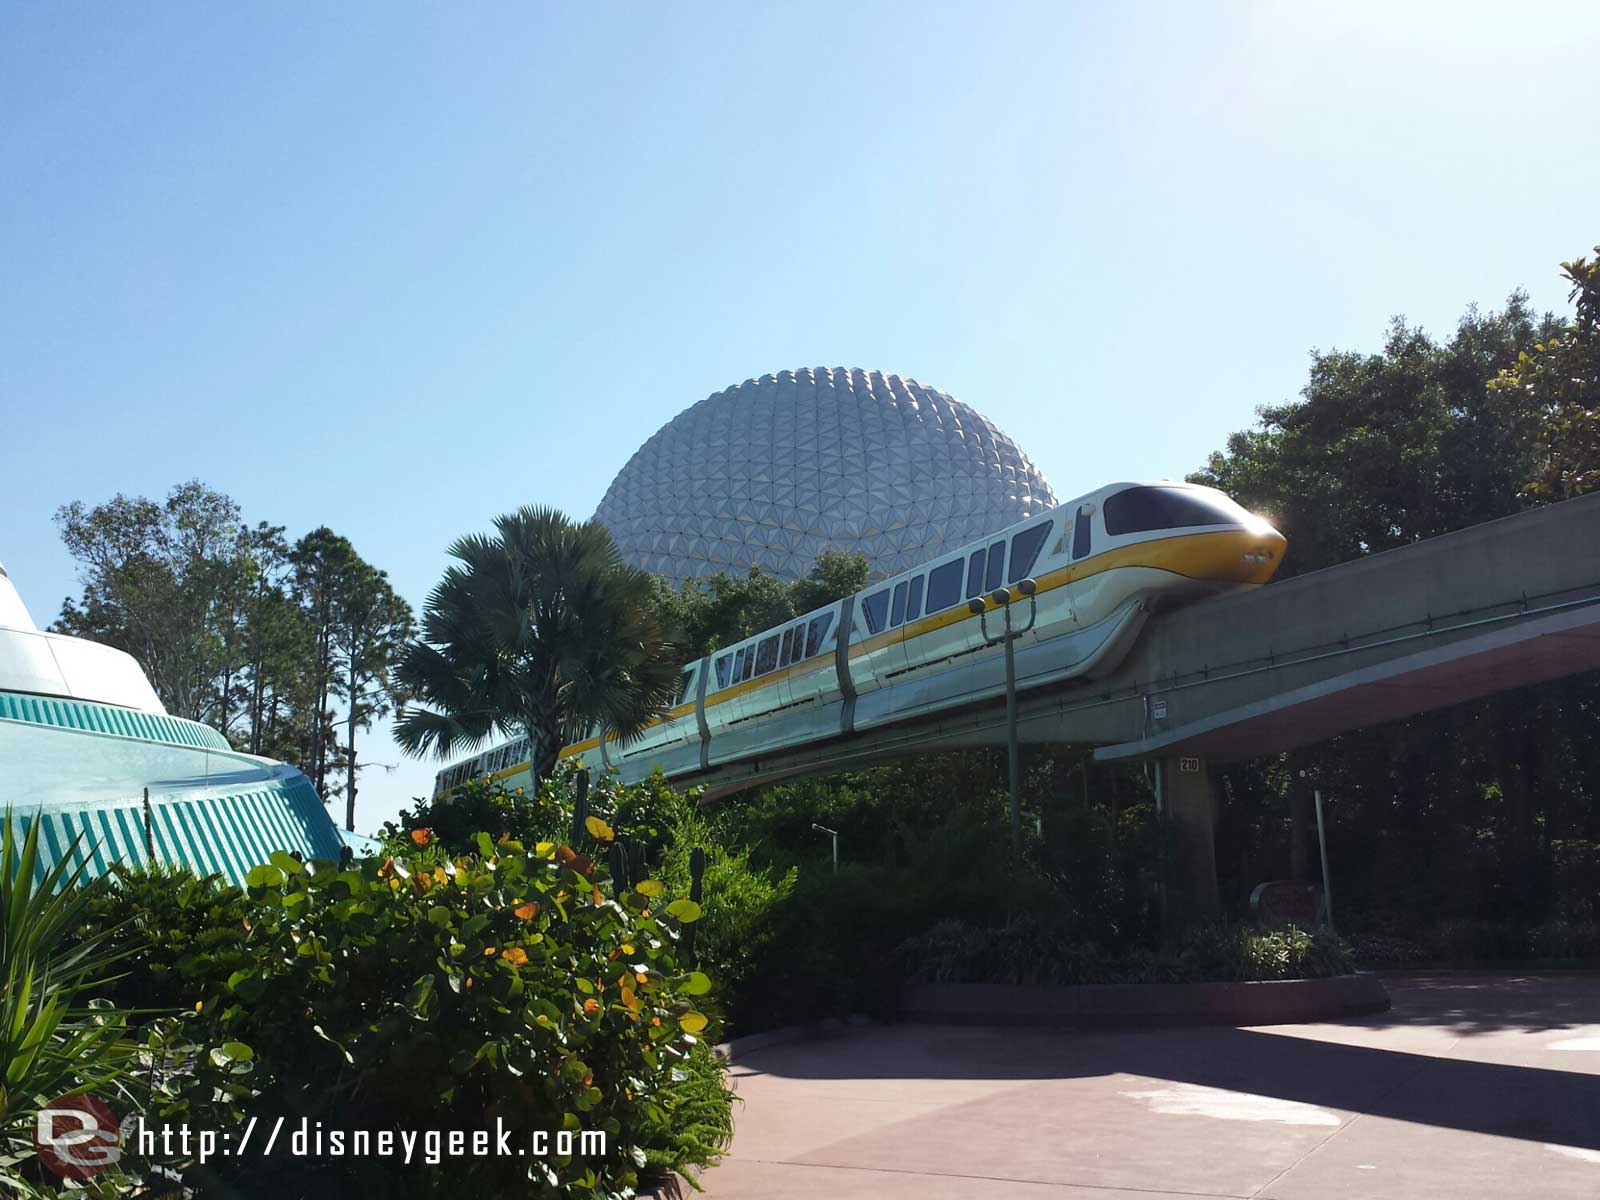 Monorail yellow passing by Spaceship Earth #Epcot